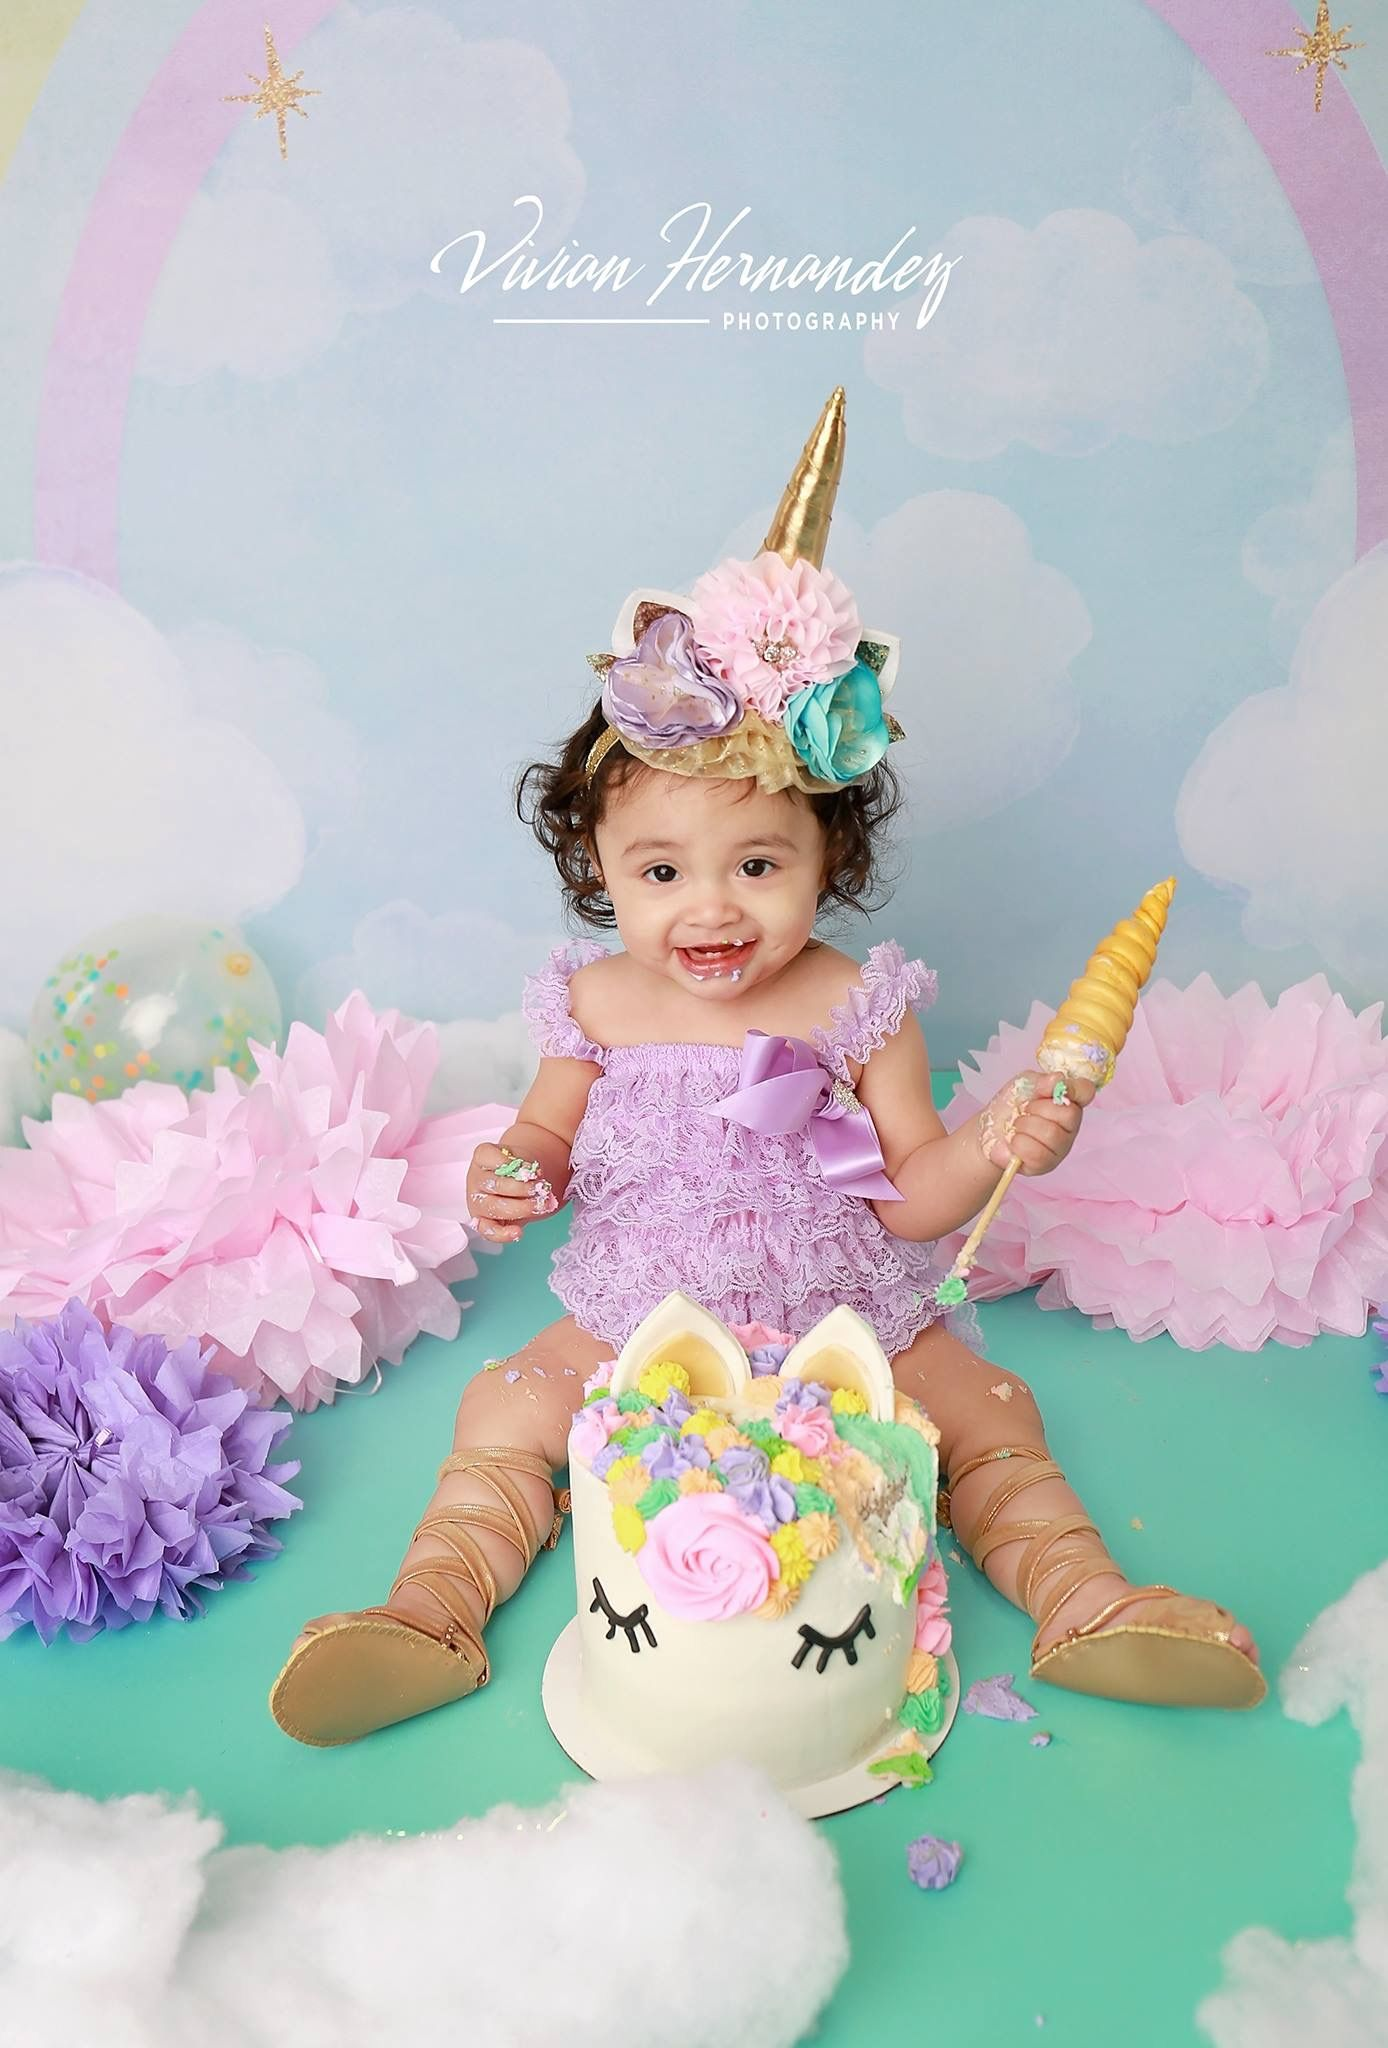 Olivia S Unicorn Themed Cake Smash Session